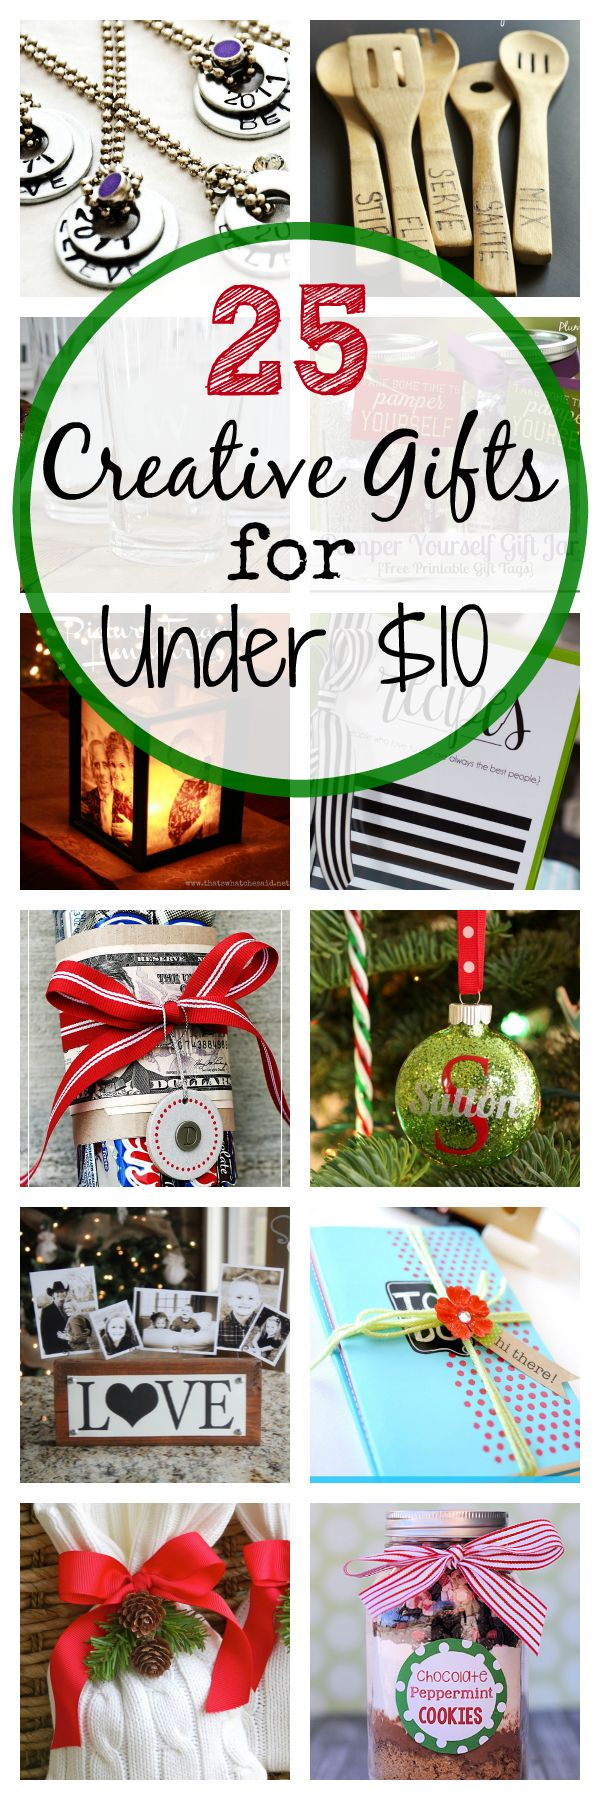 Best 25 christmas gifts for coworkers ideas on pinterest diy best 25 christmas gifts for coworkers ideas on pinterest diy christmas gifts for coworkers school friend christmas presents and diy christmas gifts negle Choice Image